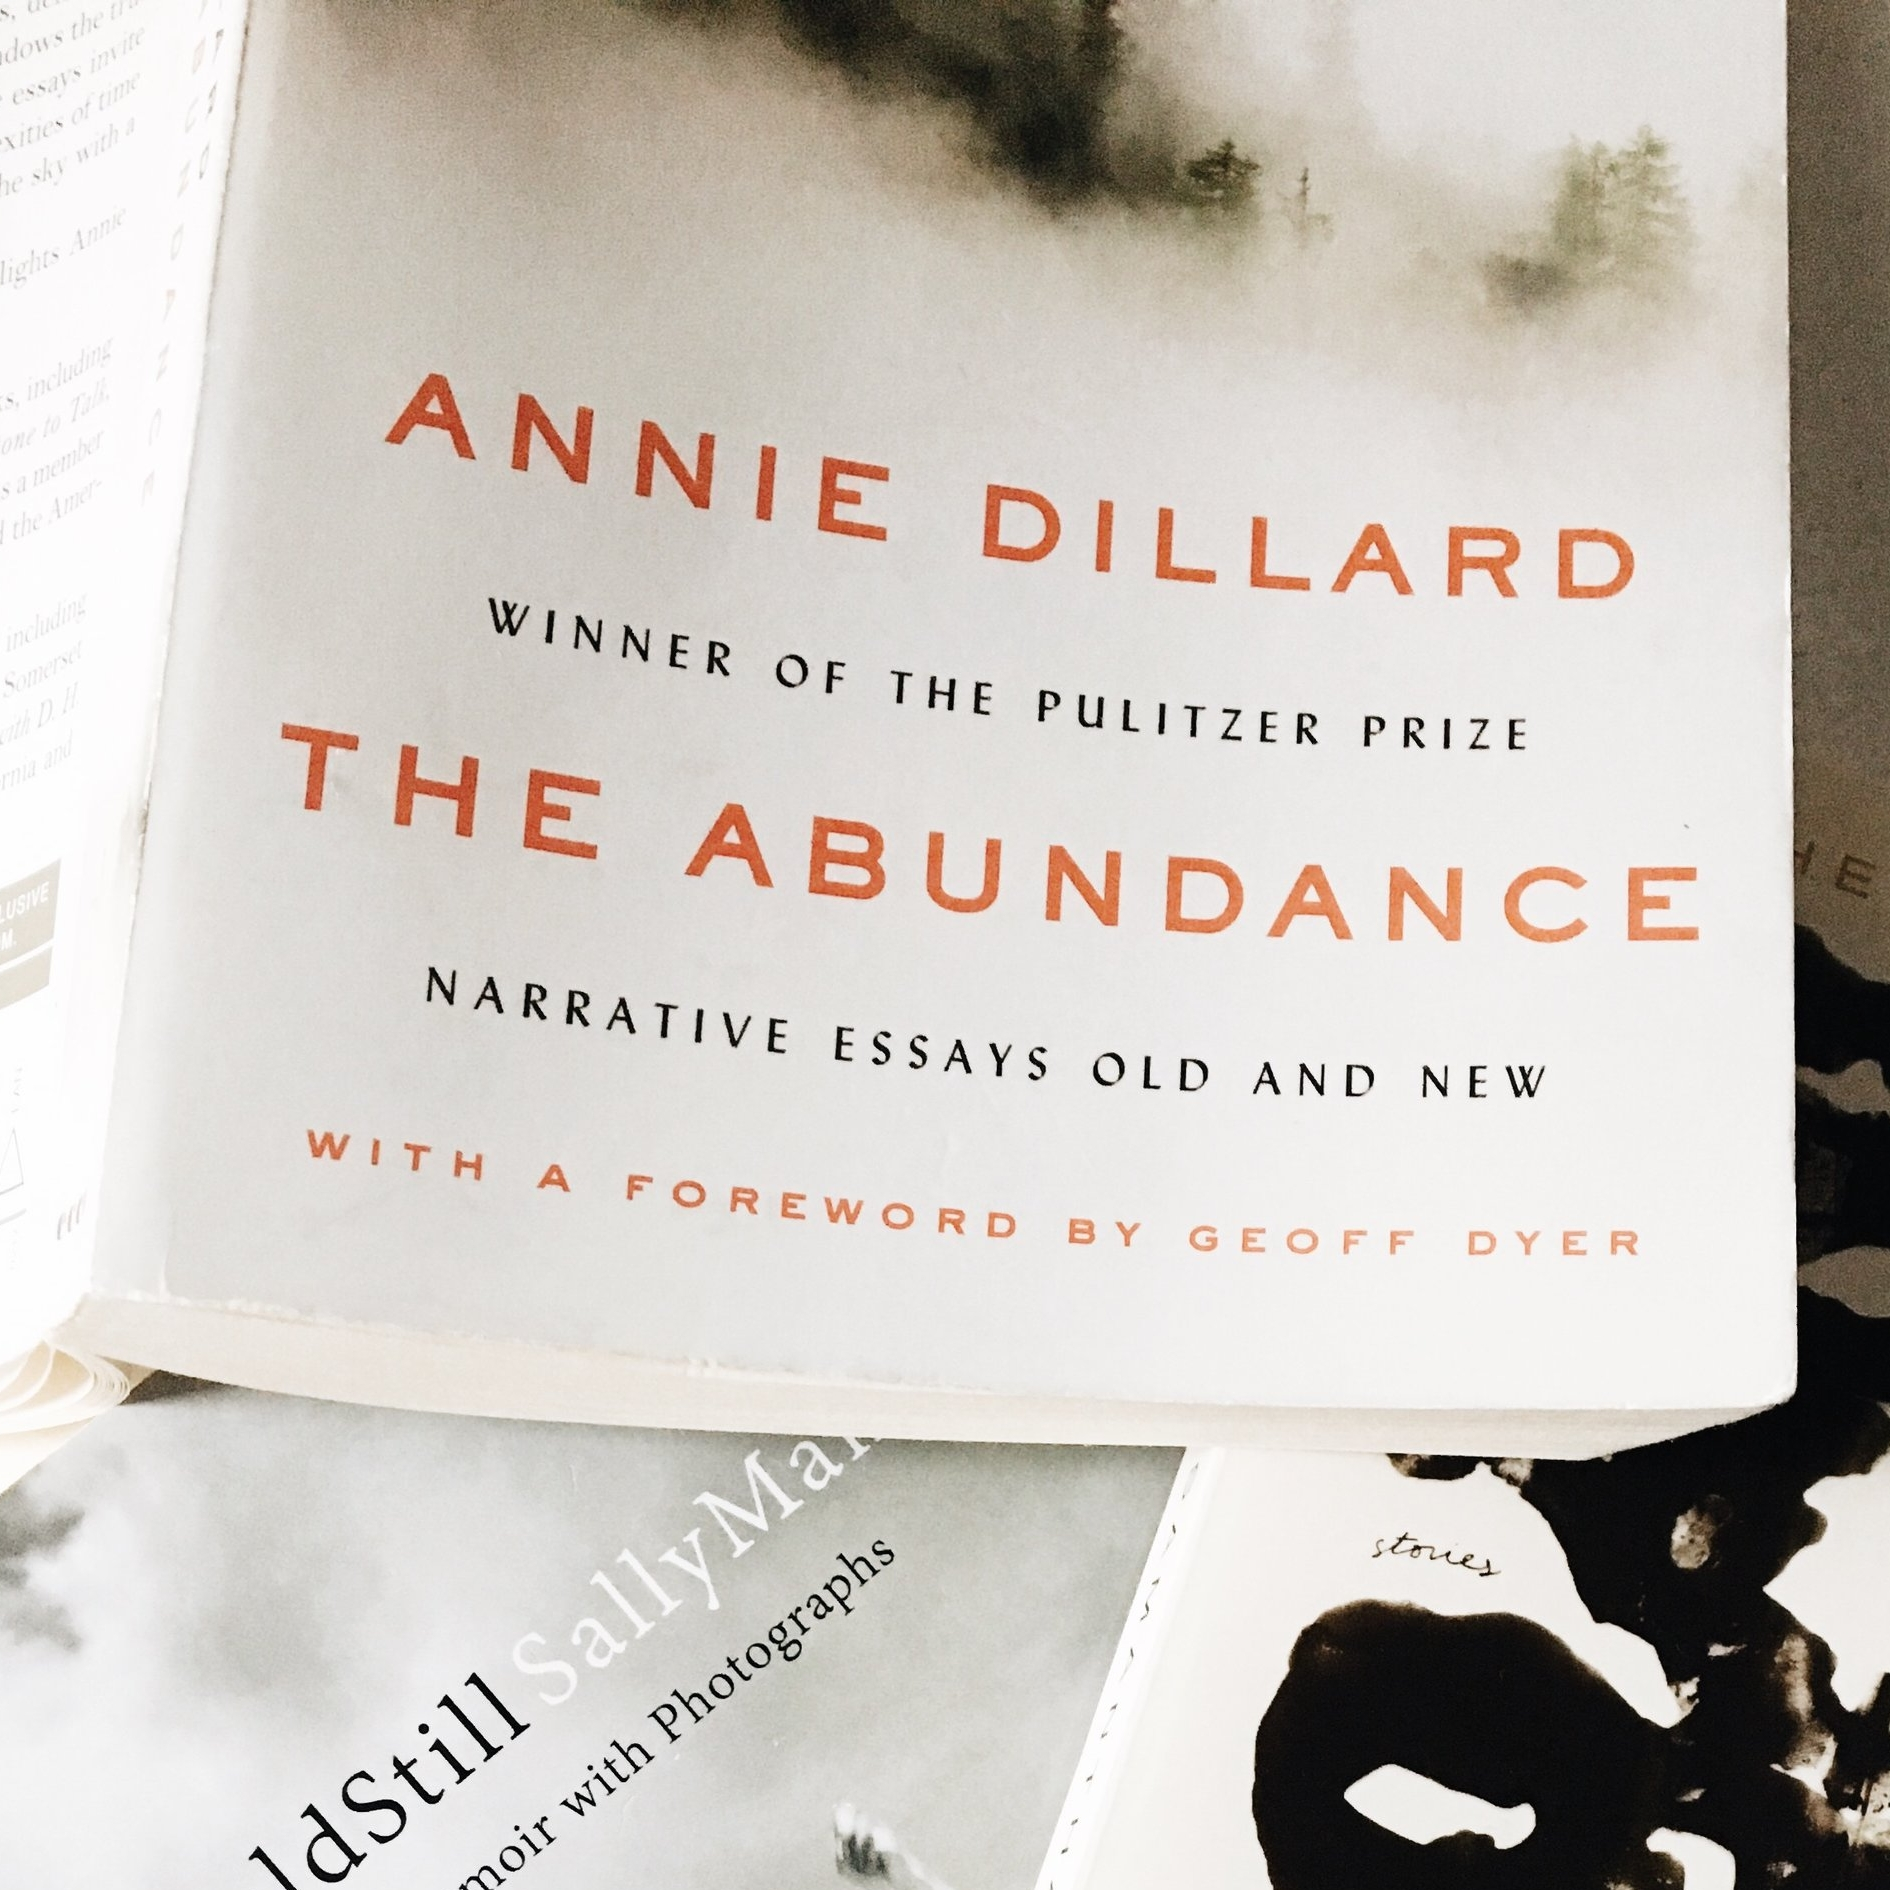 The Abundance, Annie Dillard - Some of the best prose I've had the pleasure of reading. This book reminds me of how beautiful IT all is. The intersection of the natural world and human spirit; how it all tangles together in the ether.